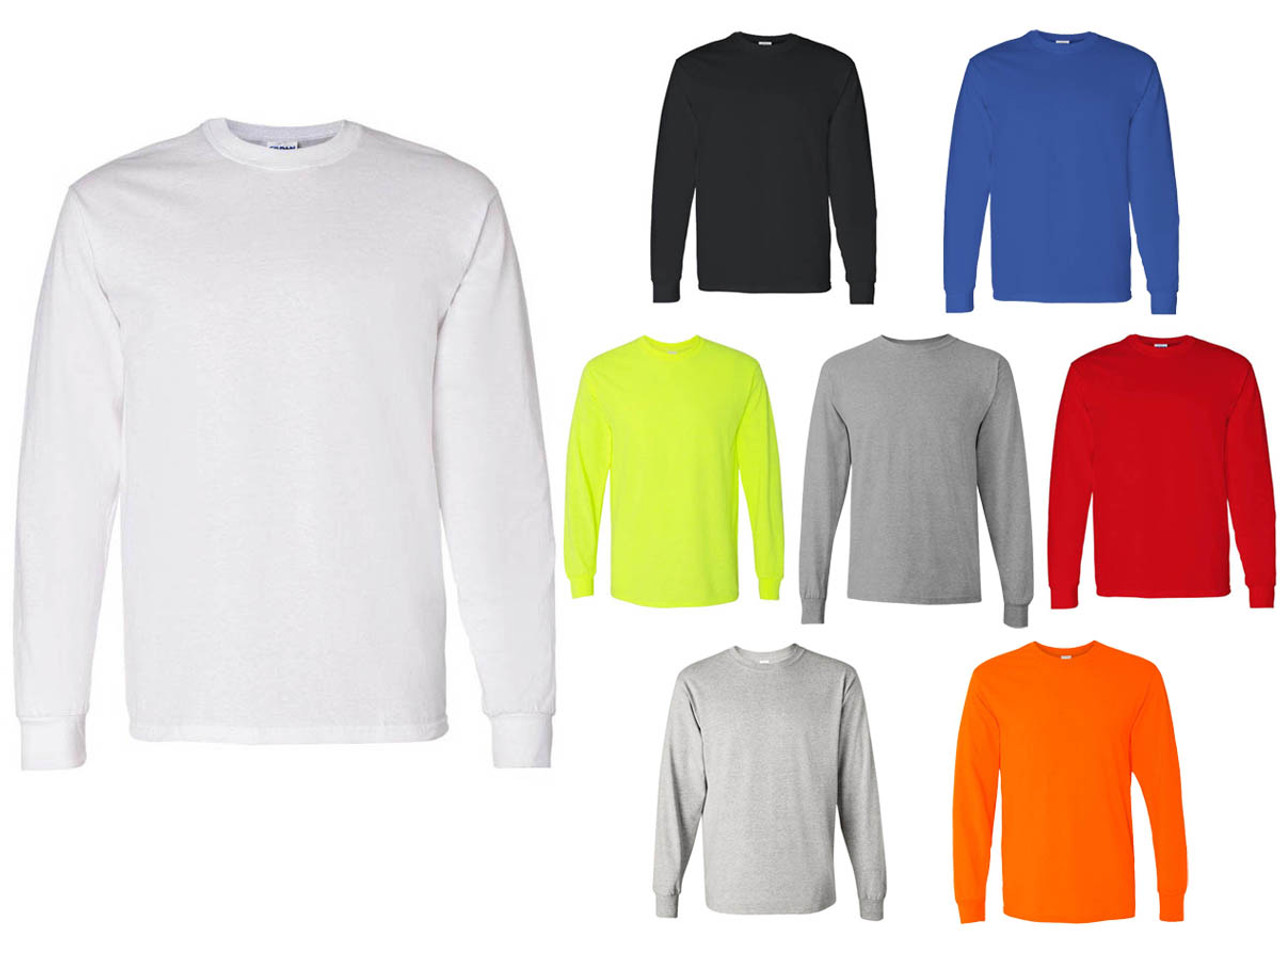 100% top quality quite nice performance sportswear Long Sleeve T‑Shirts Gildan G5400 Adult Unisex 5.3 oz Heavy Cotton (8  Colors Available) - 5045